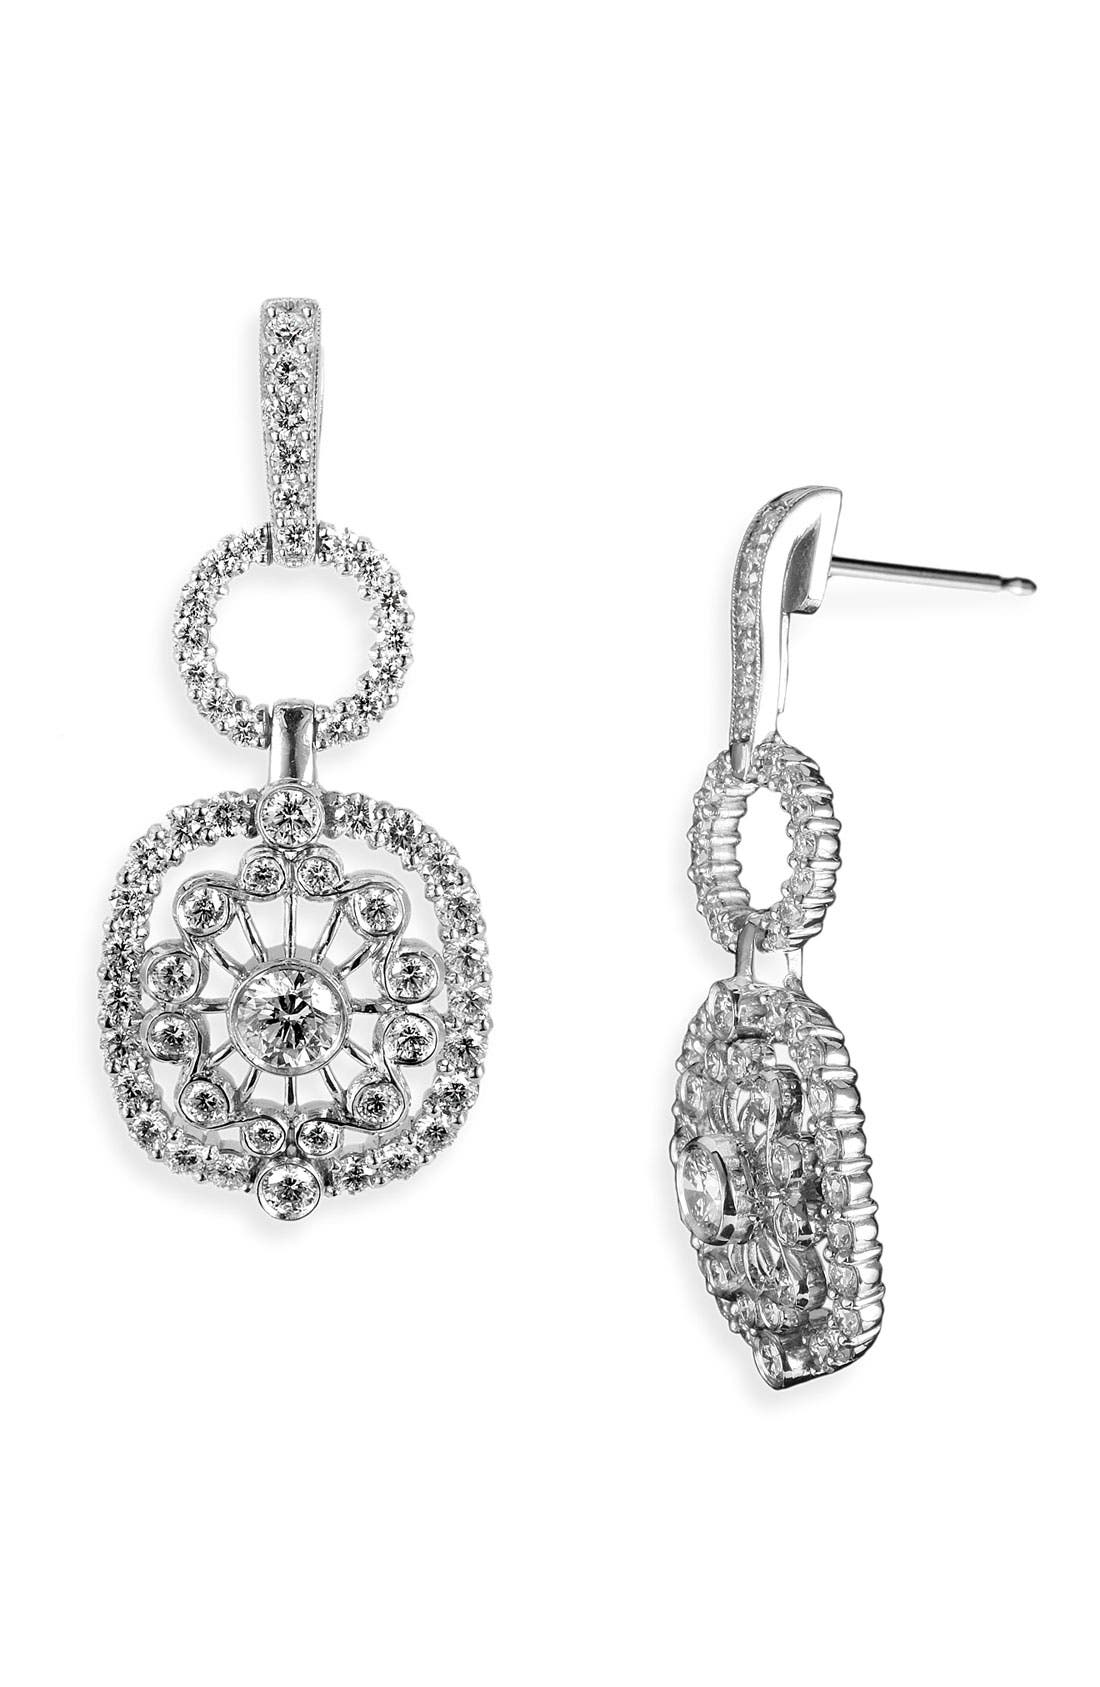 Main Image - Jack Kelége 'Byzantine' Square Diamond Earrings